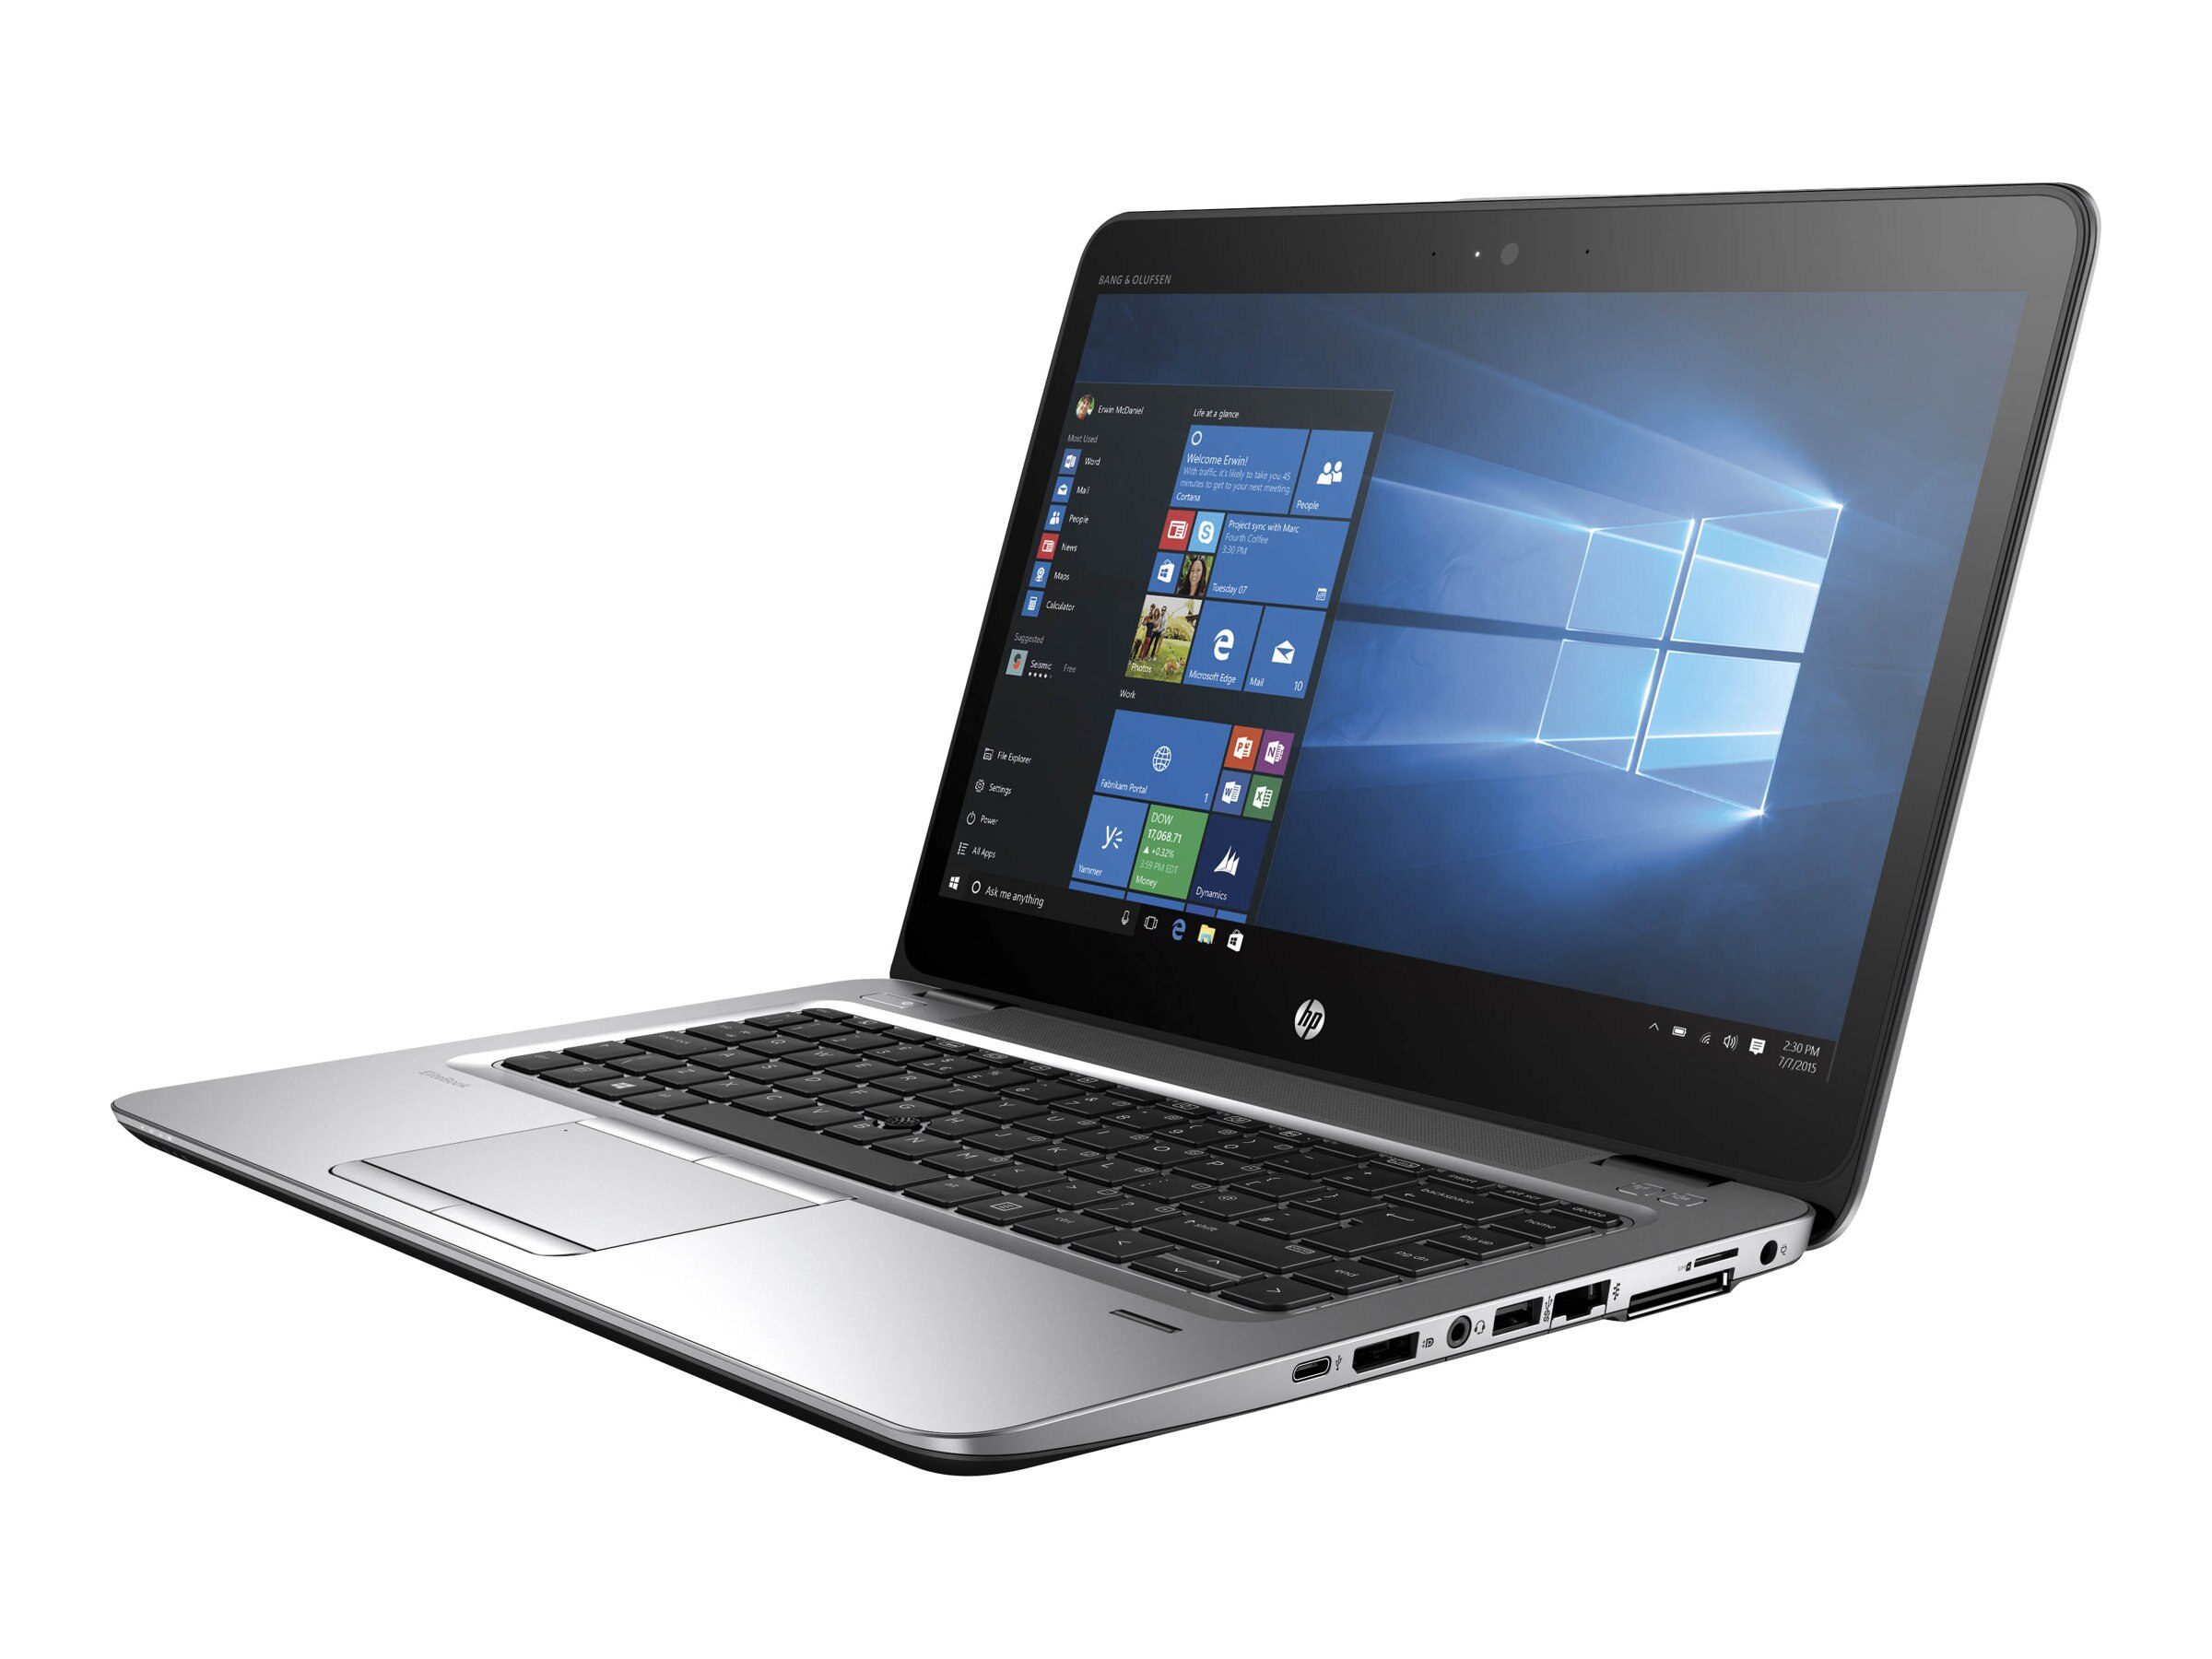 HP EliteBook 745 G3 1.8GHz A10 Series 14in display